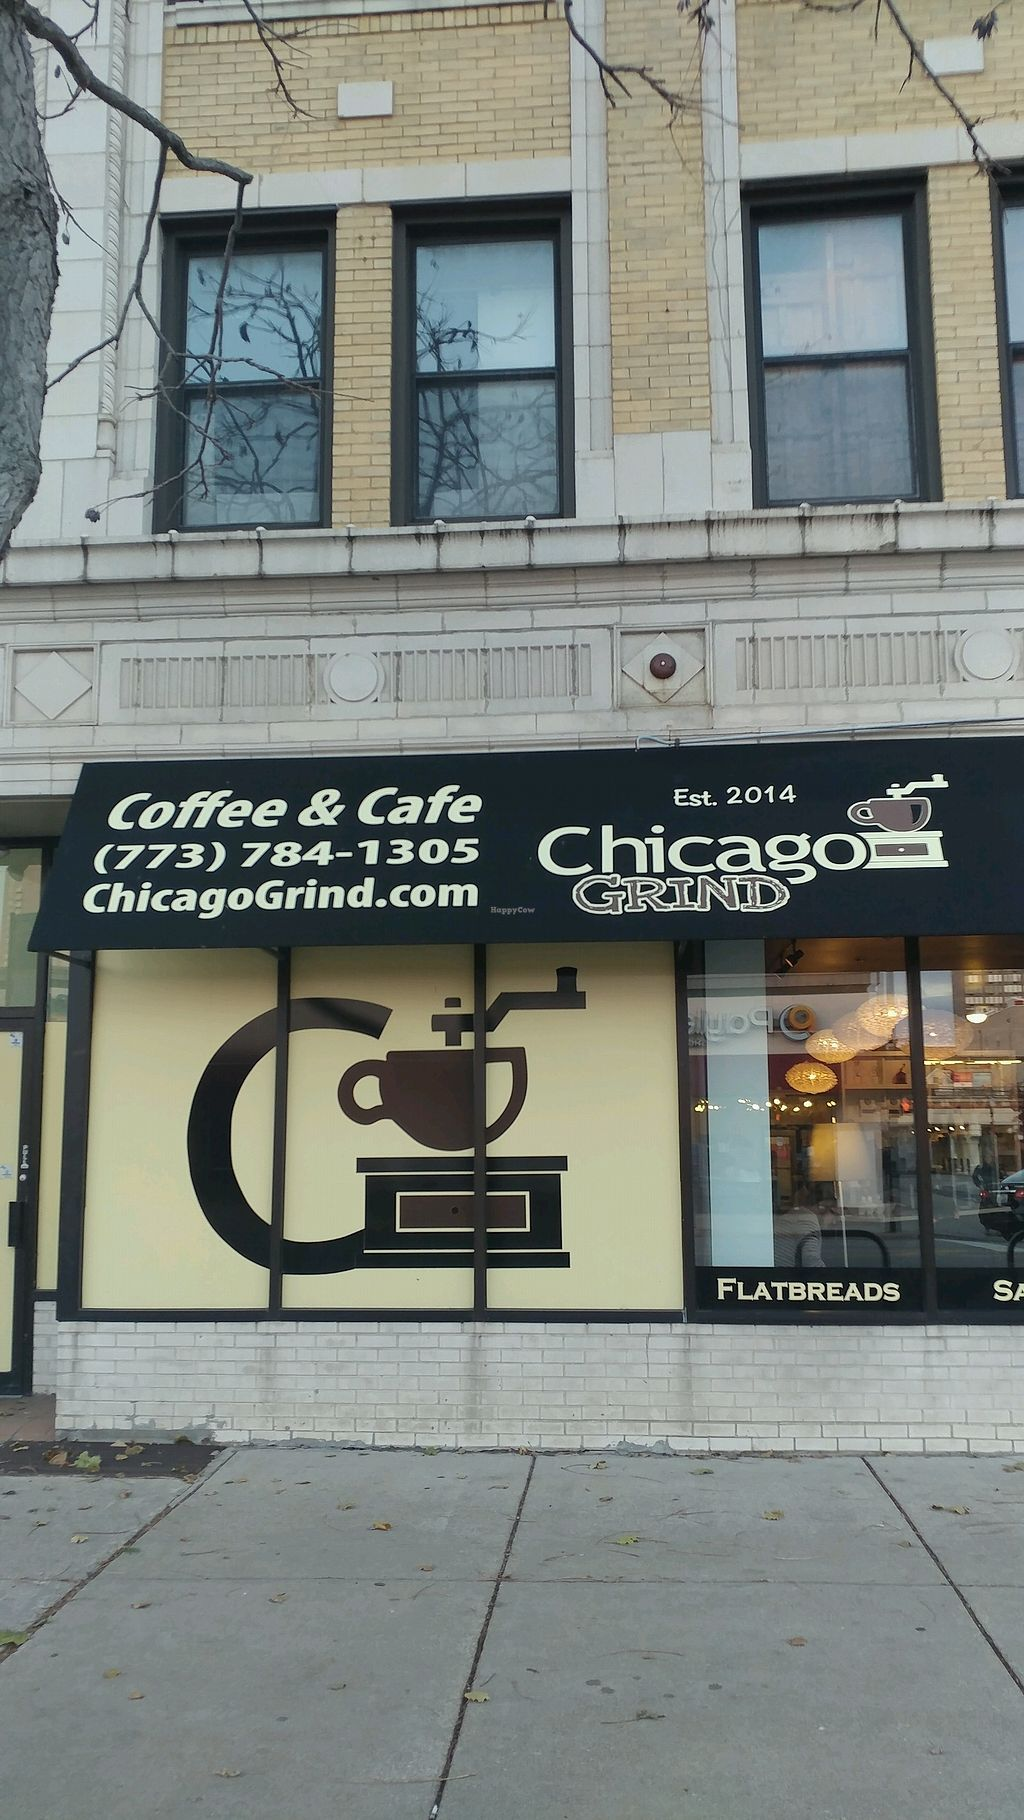 """Photo of Chicago Grind  by <a href=""""/members/profile/mster9ball1"""">mster9ball1</a> <br/>corner of Berwyn and Broadway - in Chicago <br/> November 21, 2017  - <a href='/contact/abuse/image/105387/327935'>Report</a>"""